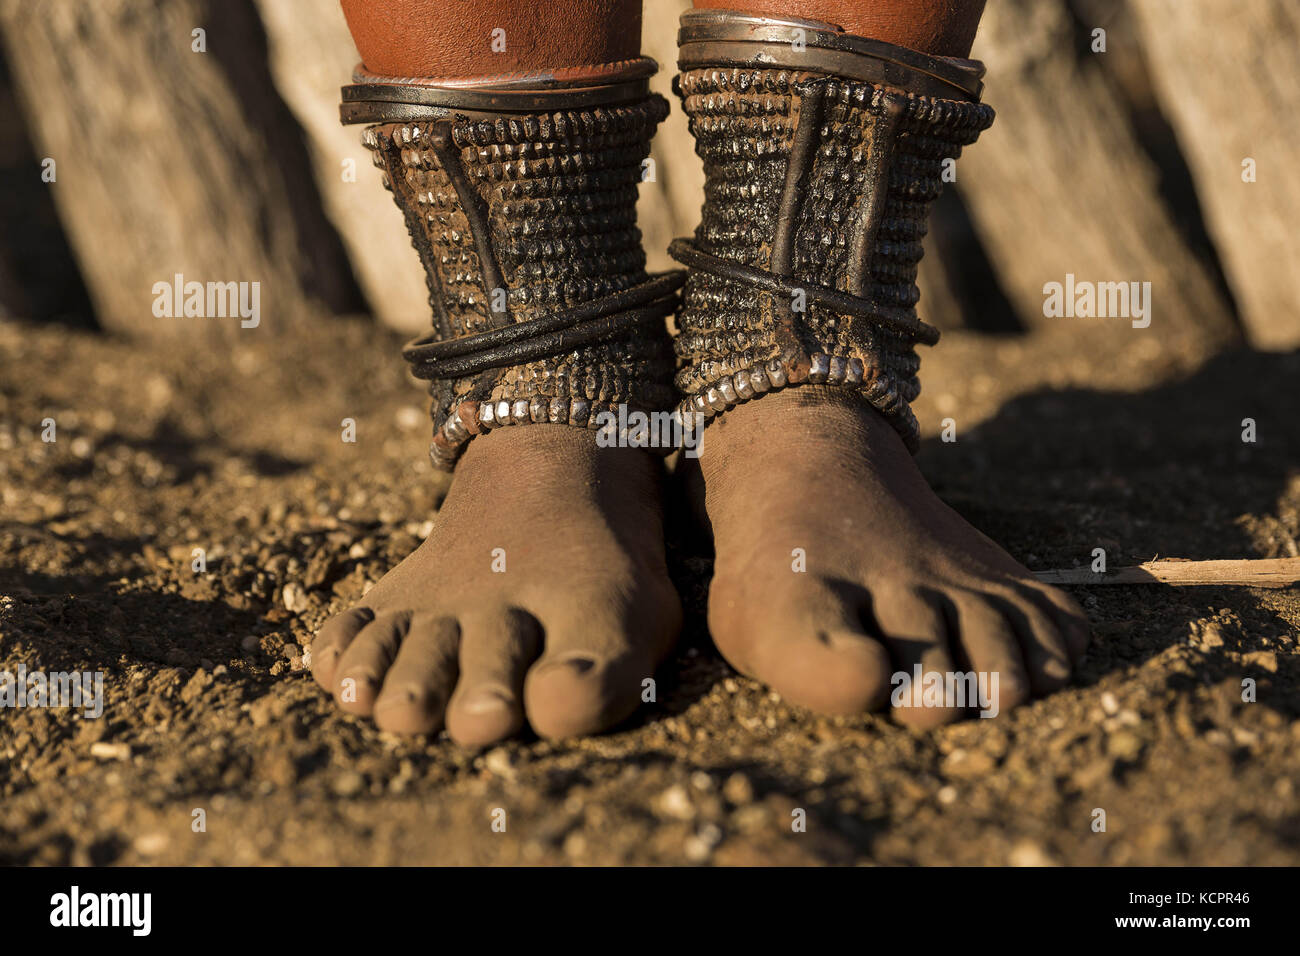 Angola. 24th July, 2016. The adult Himba women all have beaded anklets (Omohanga) which help them hide their money. The anklets also protect the legs from venomous animal bites. Credit: Tariq Zaidi/ZUMA Wire/Alamy Live News Stock Photo